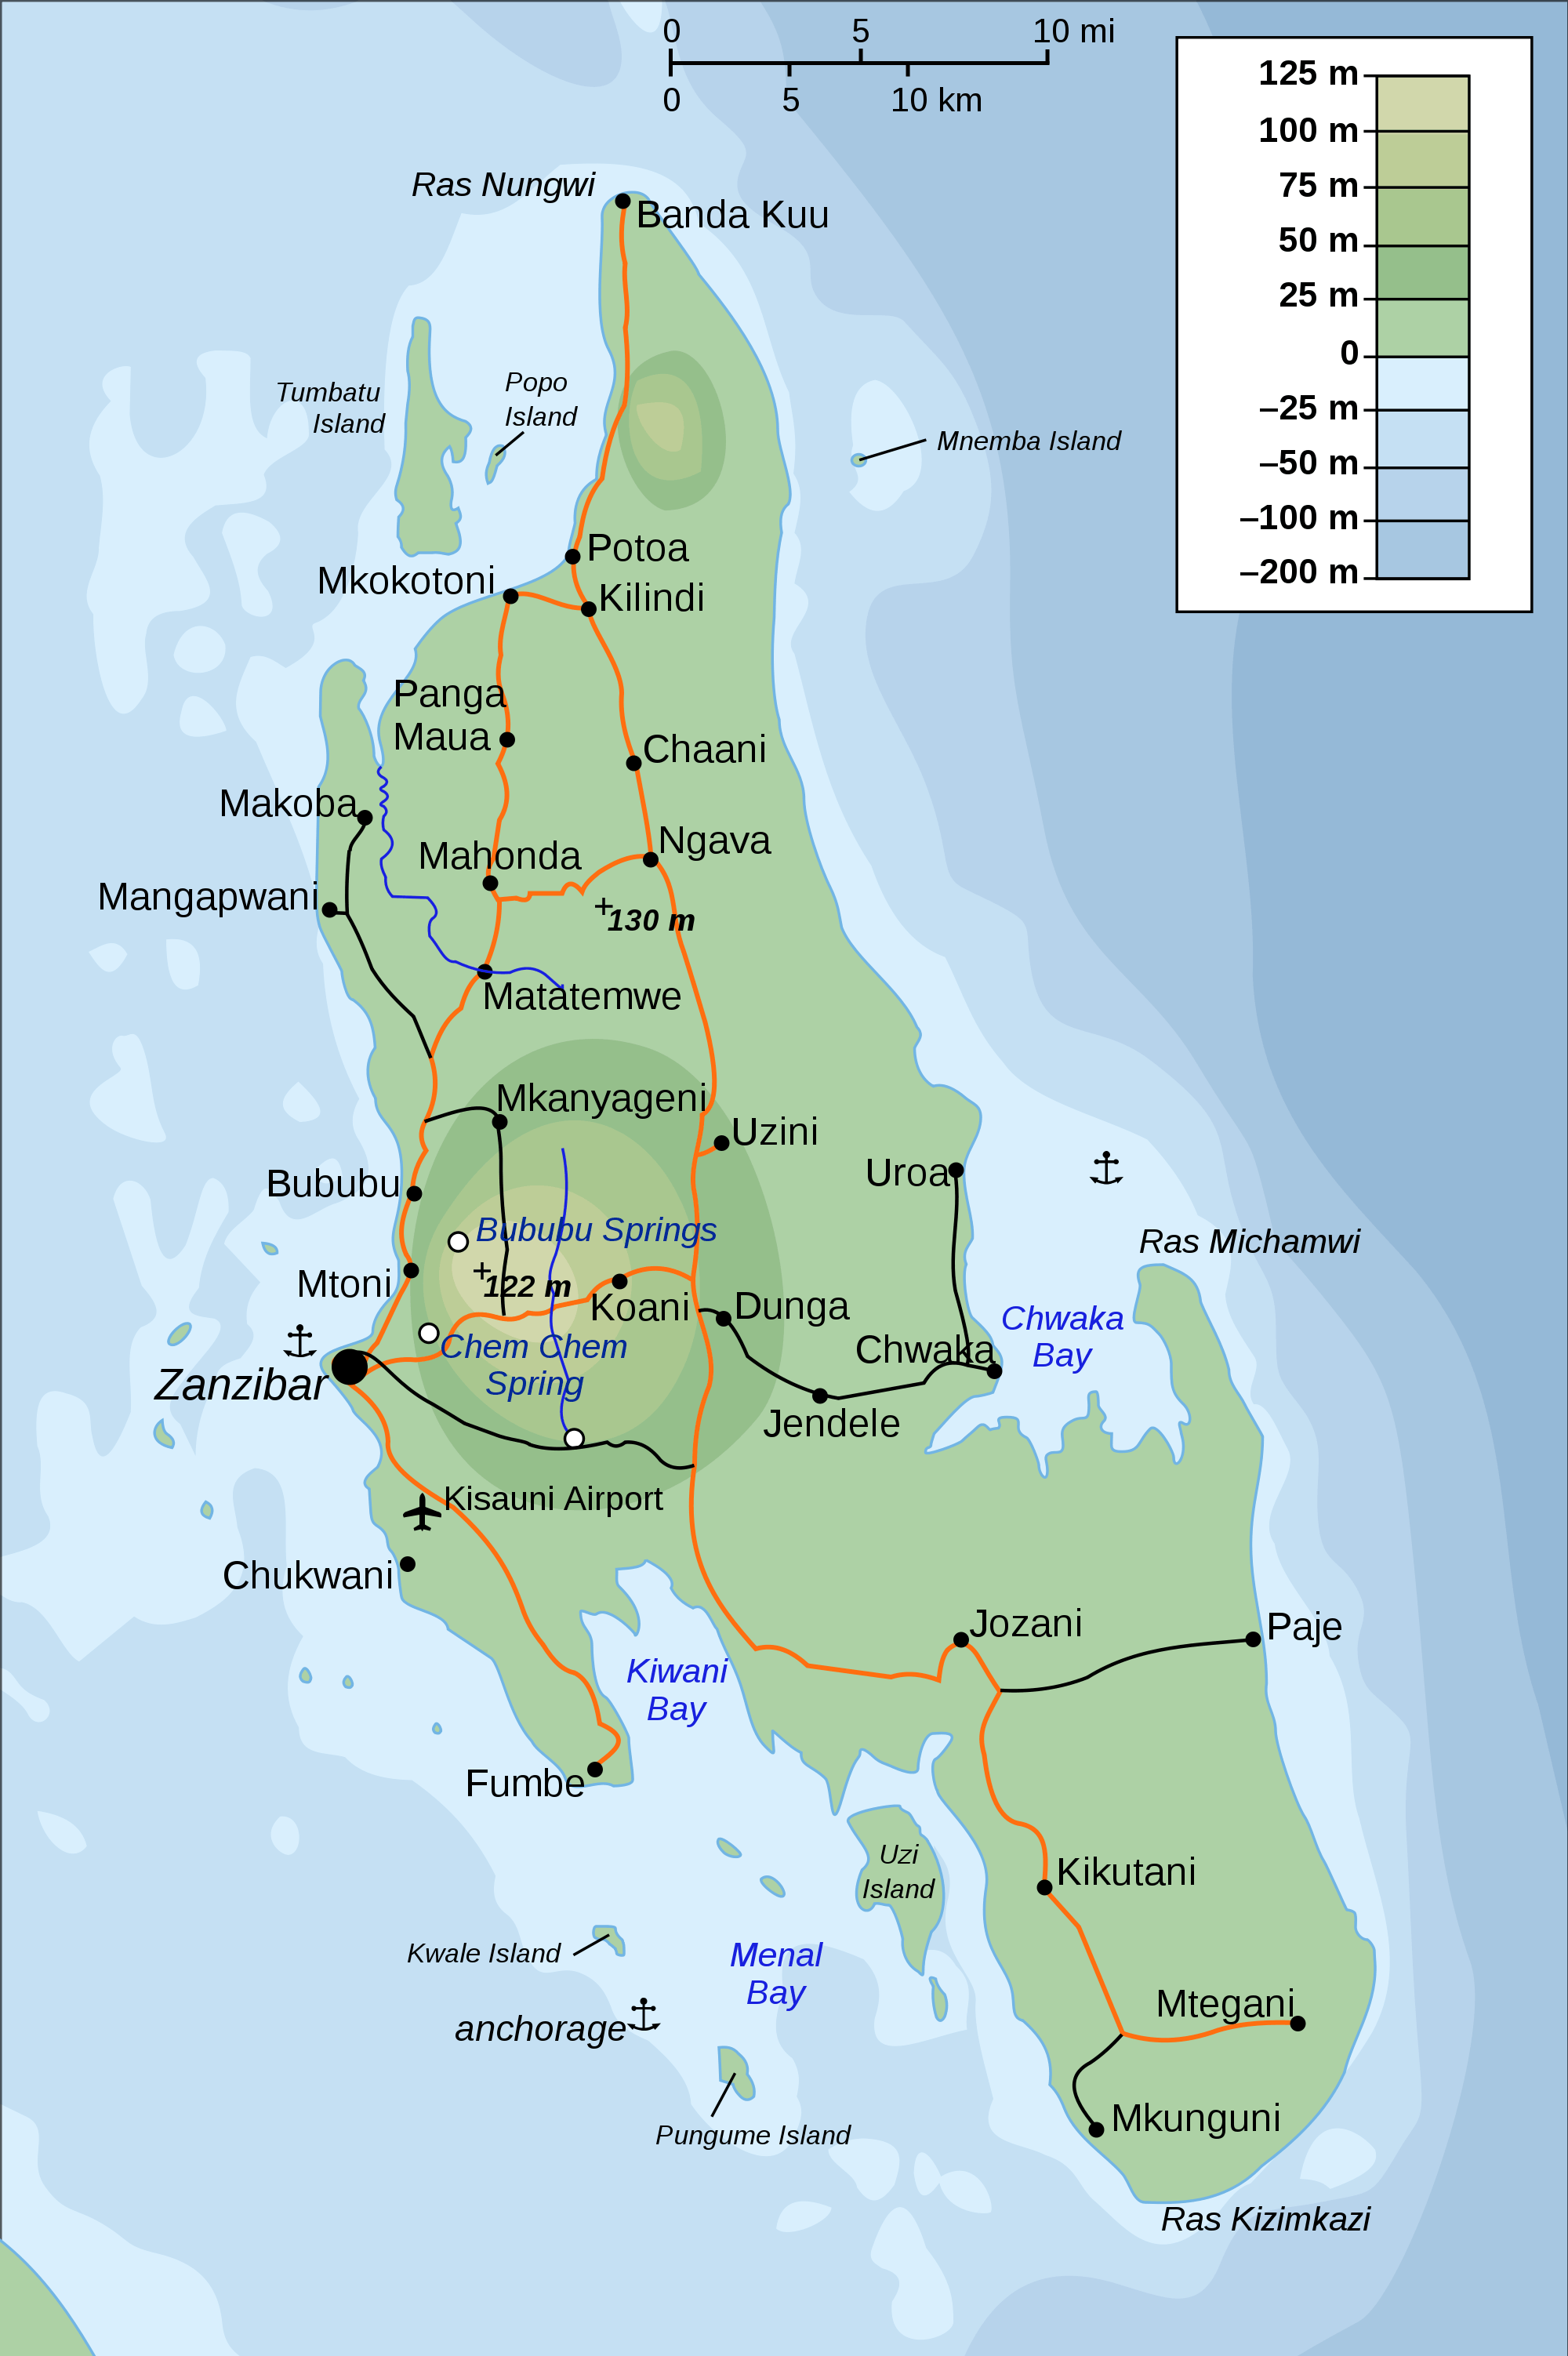 Topographic Map of Zanzibar large map